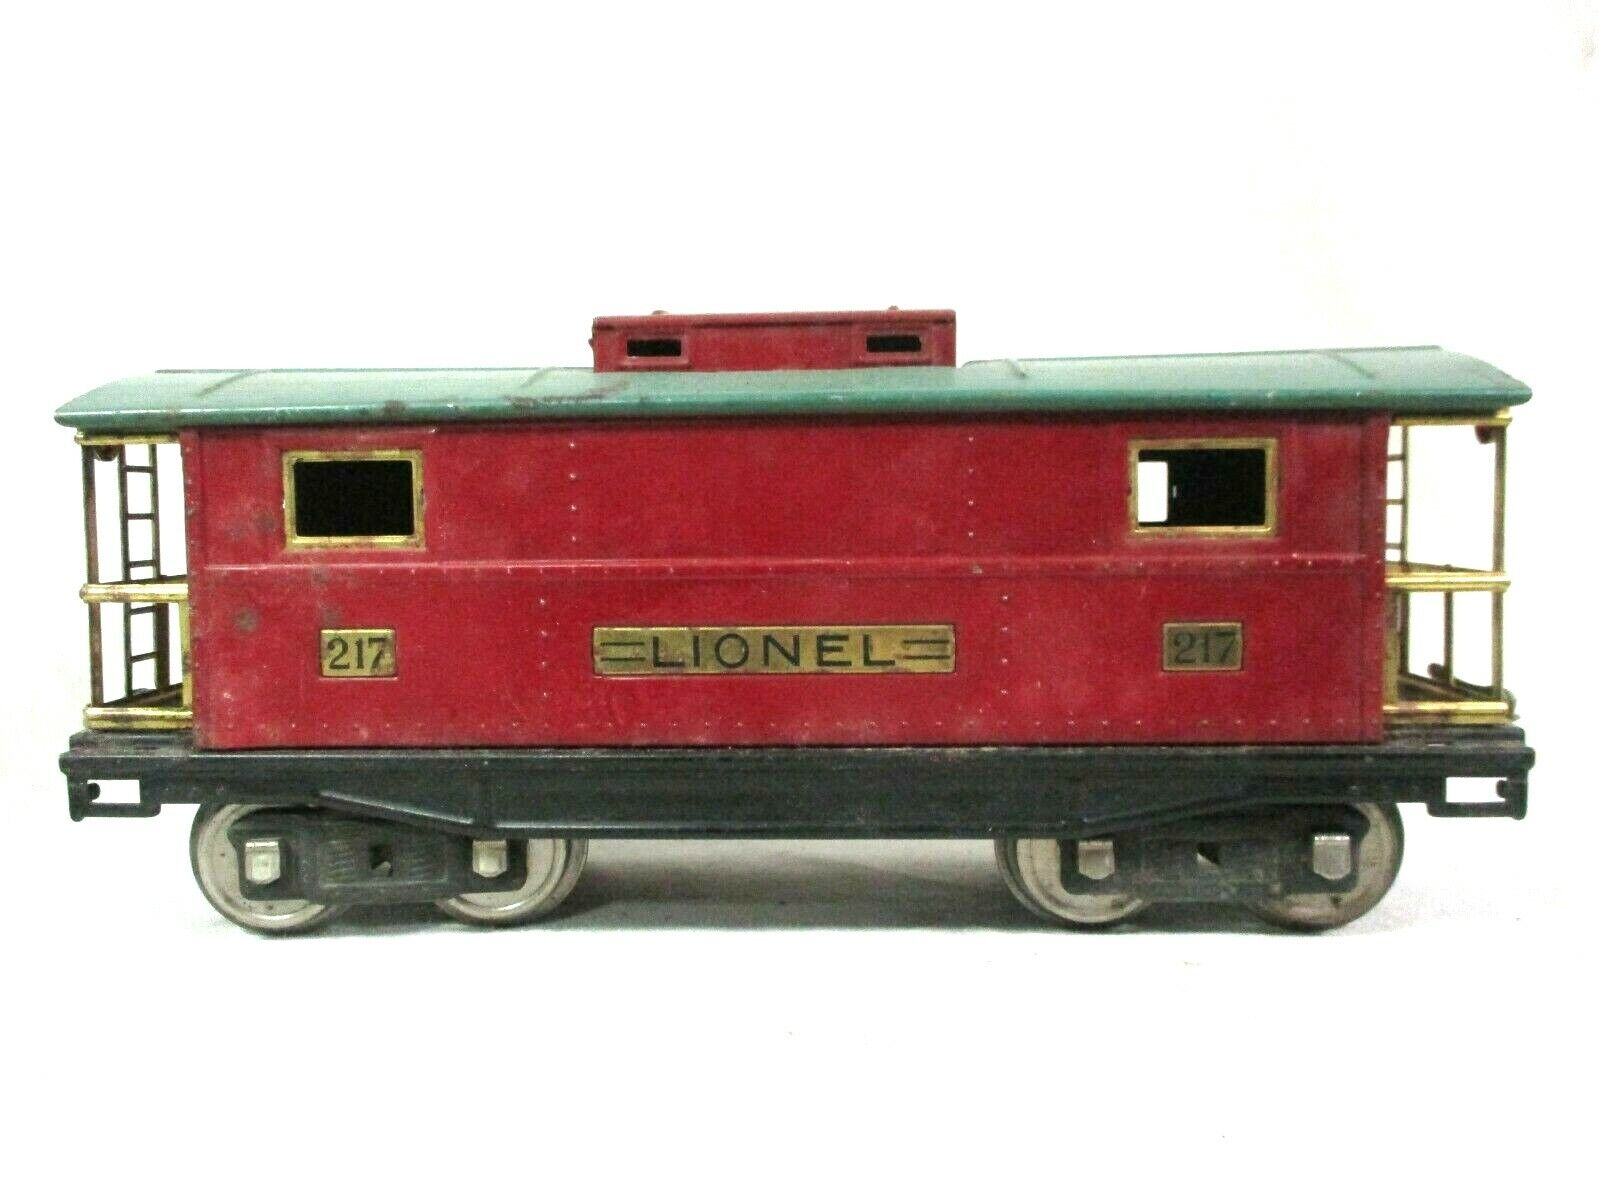 Lionel Red and Green Caboose Pre War Vintage Model Railway Train B56-2